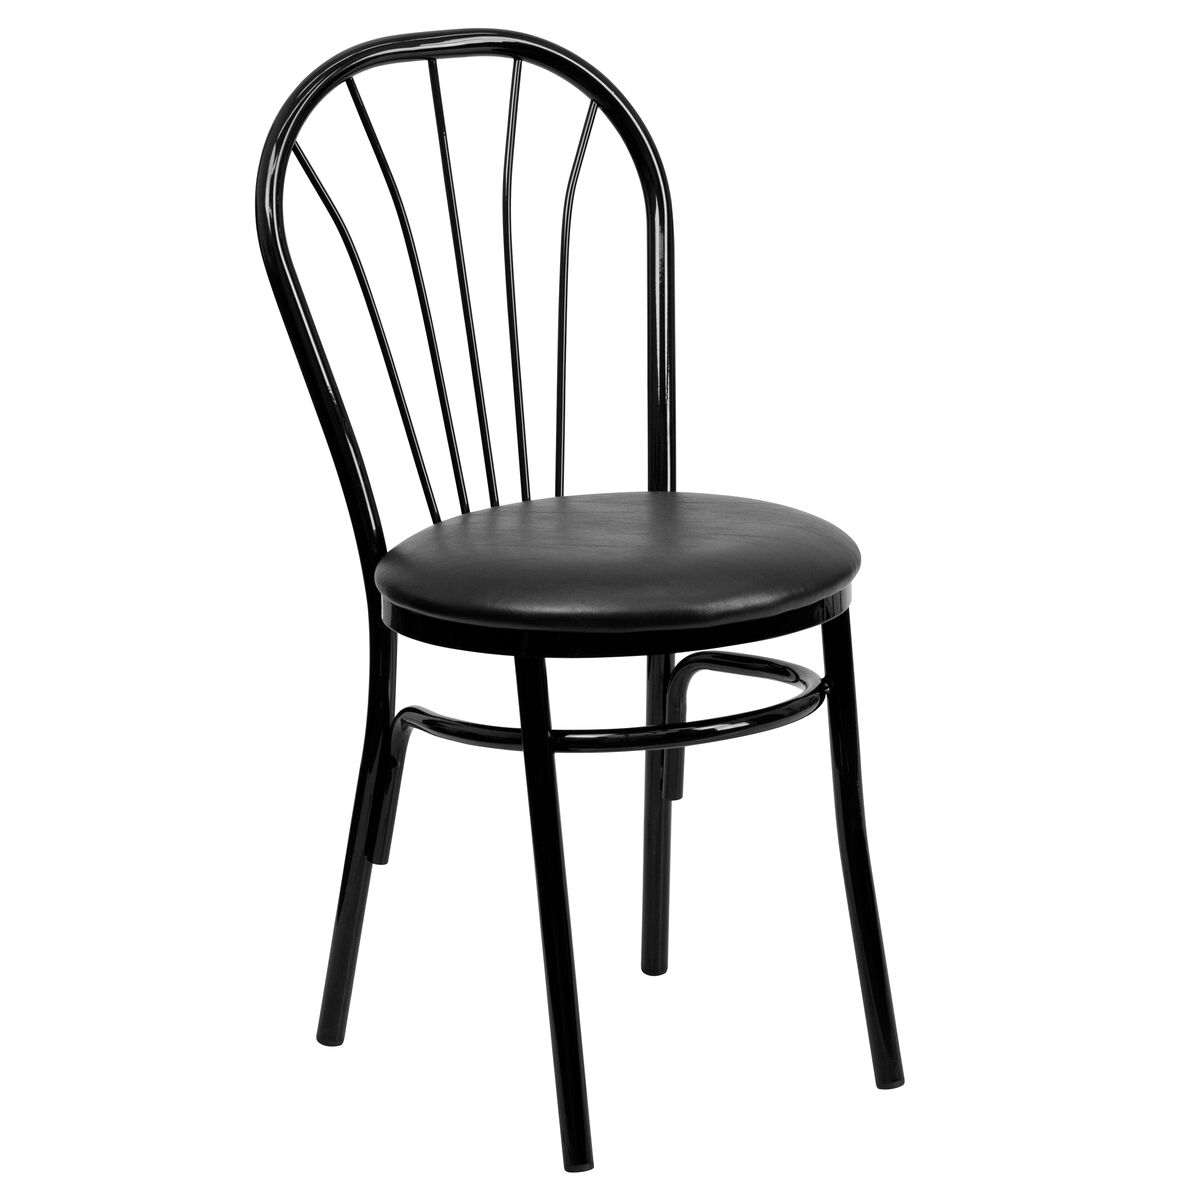 black fan chair black seat bfdh 706698 bk tdr